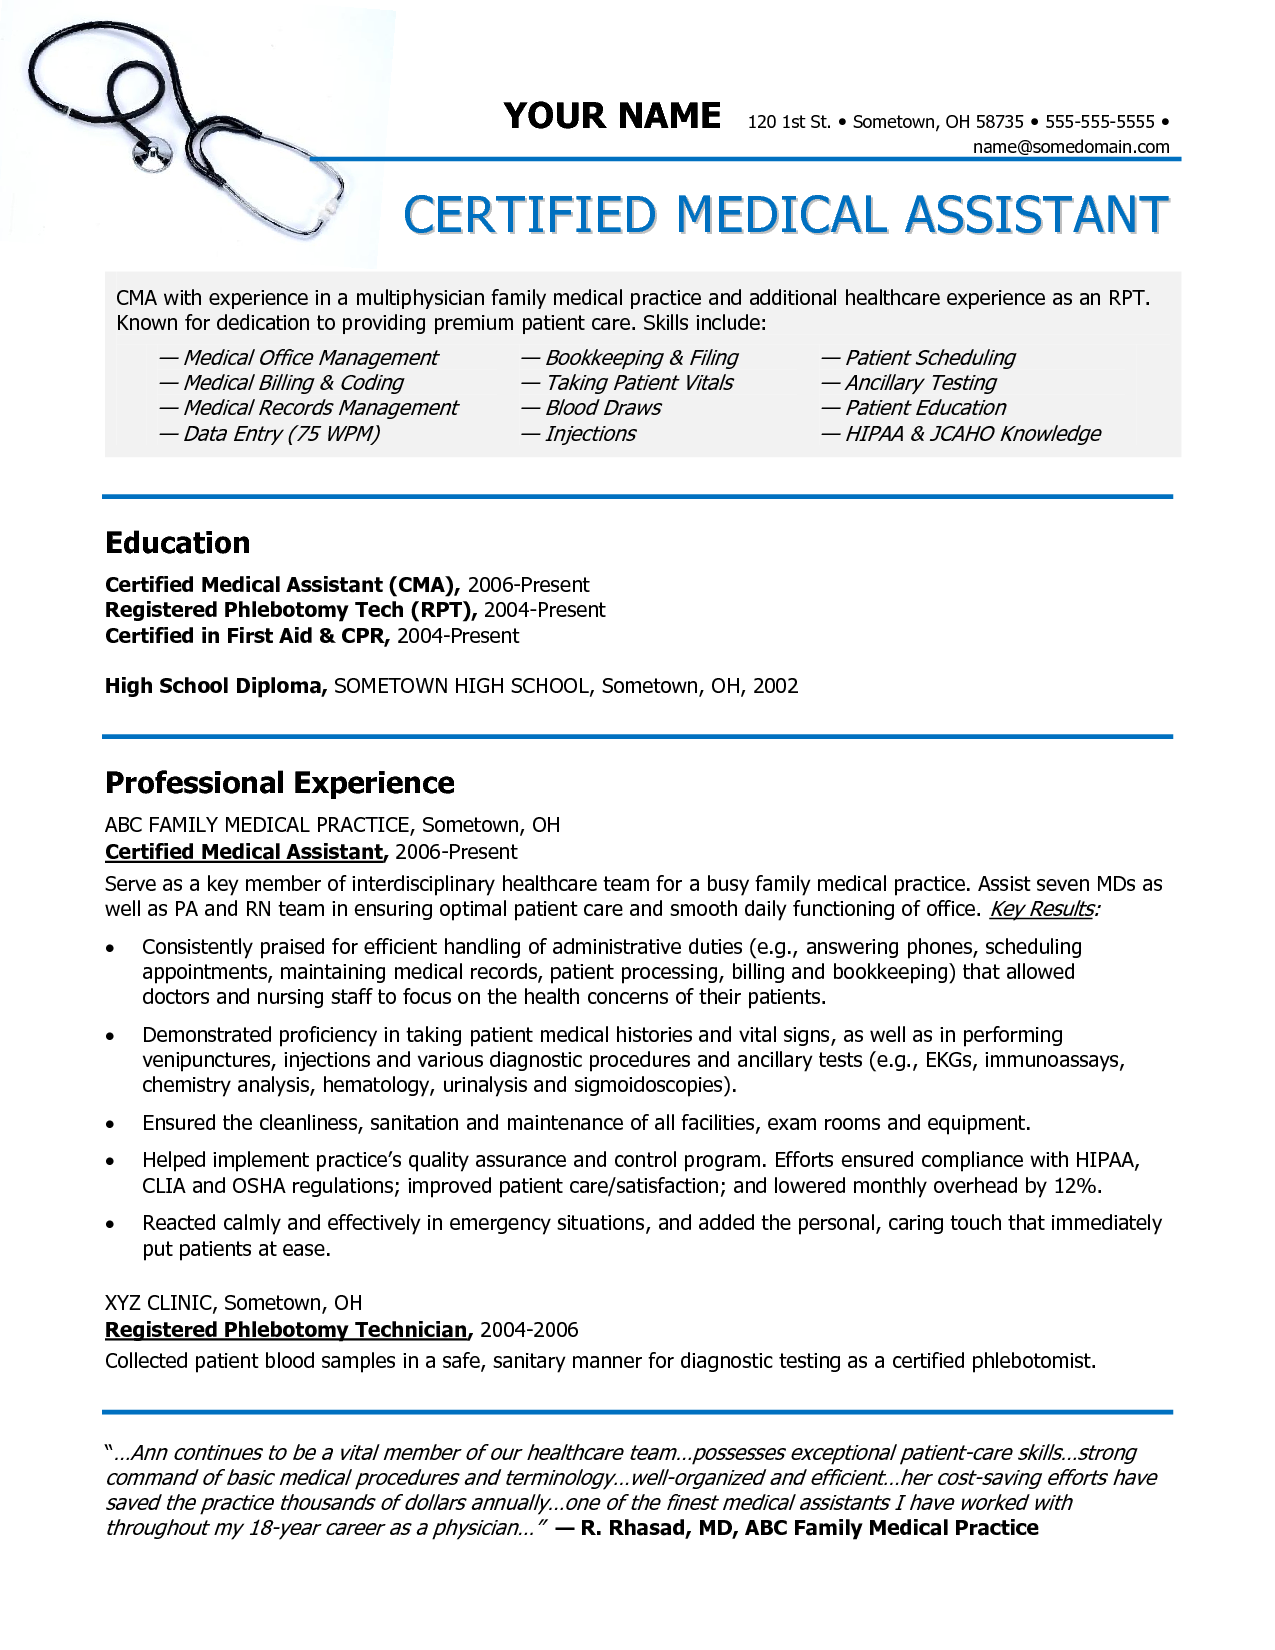 skills for medical office assistant